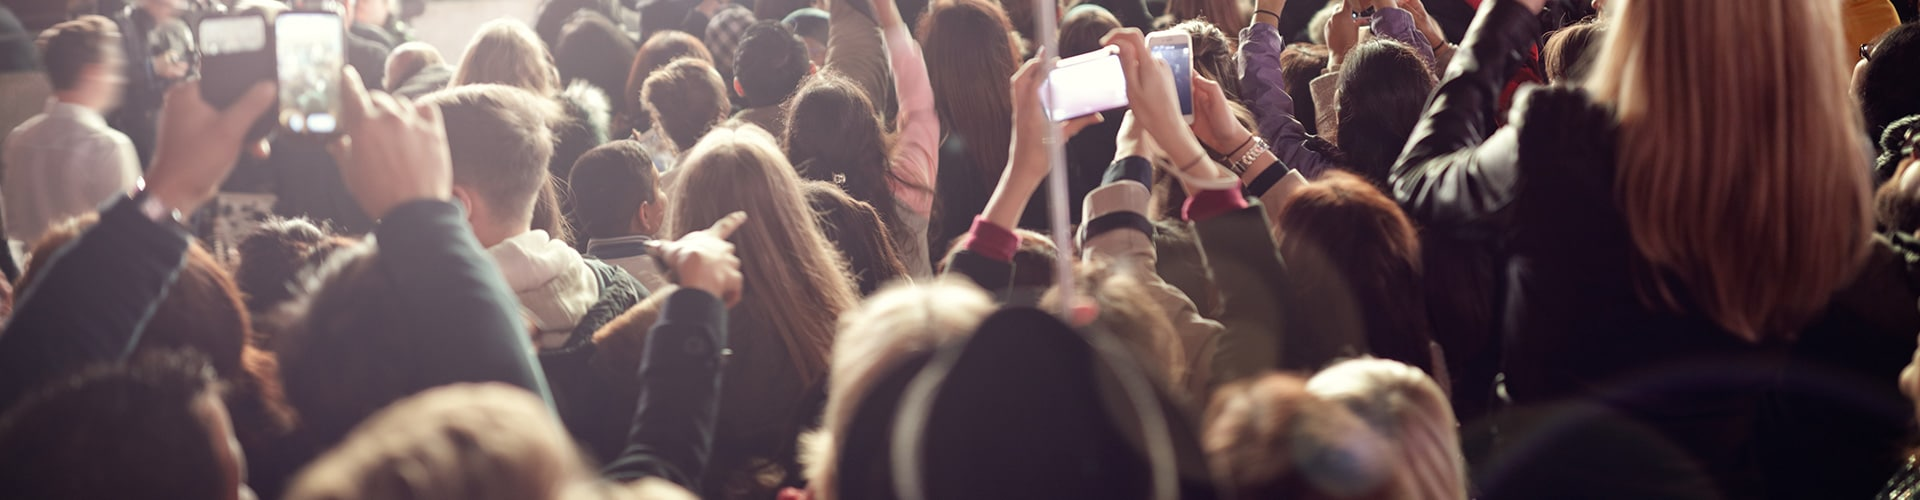 Social Media for Events: What's Missing from Your Marketing Strategy?